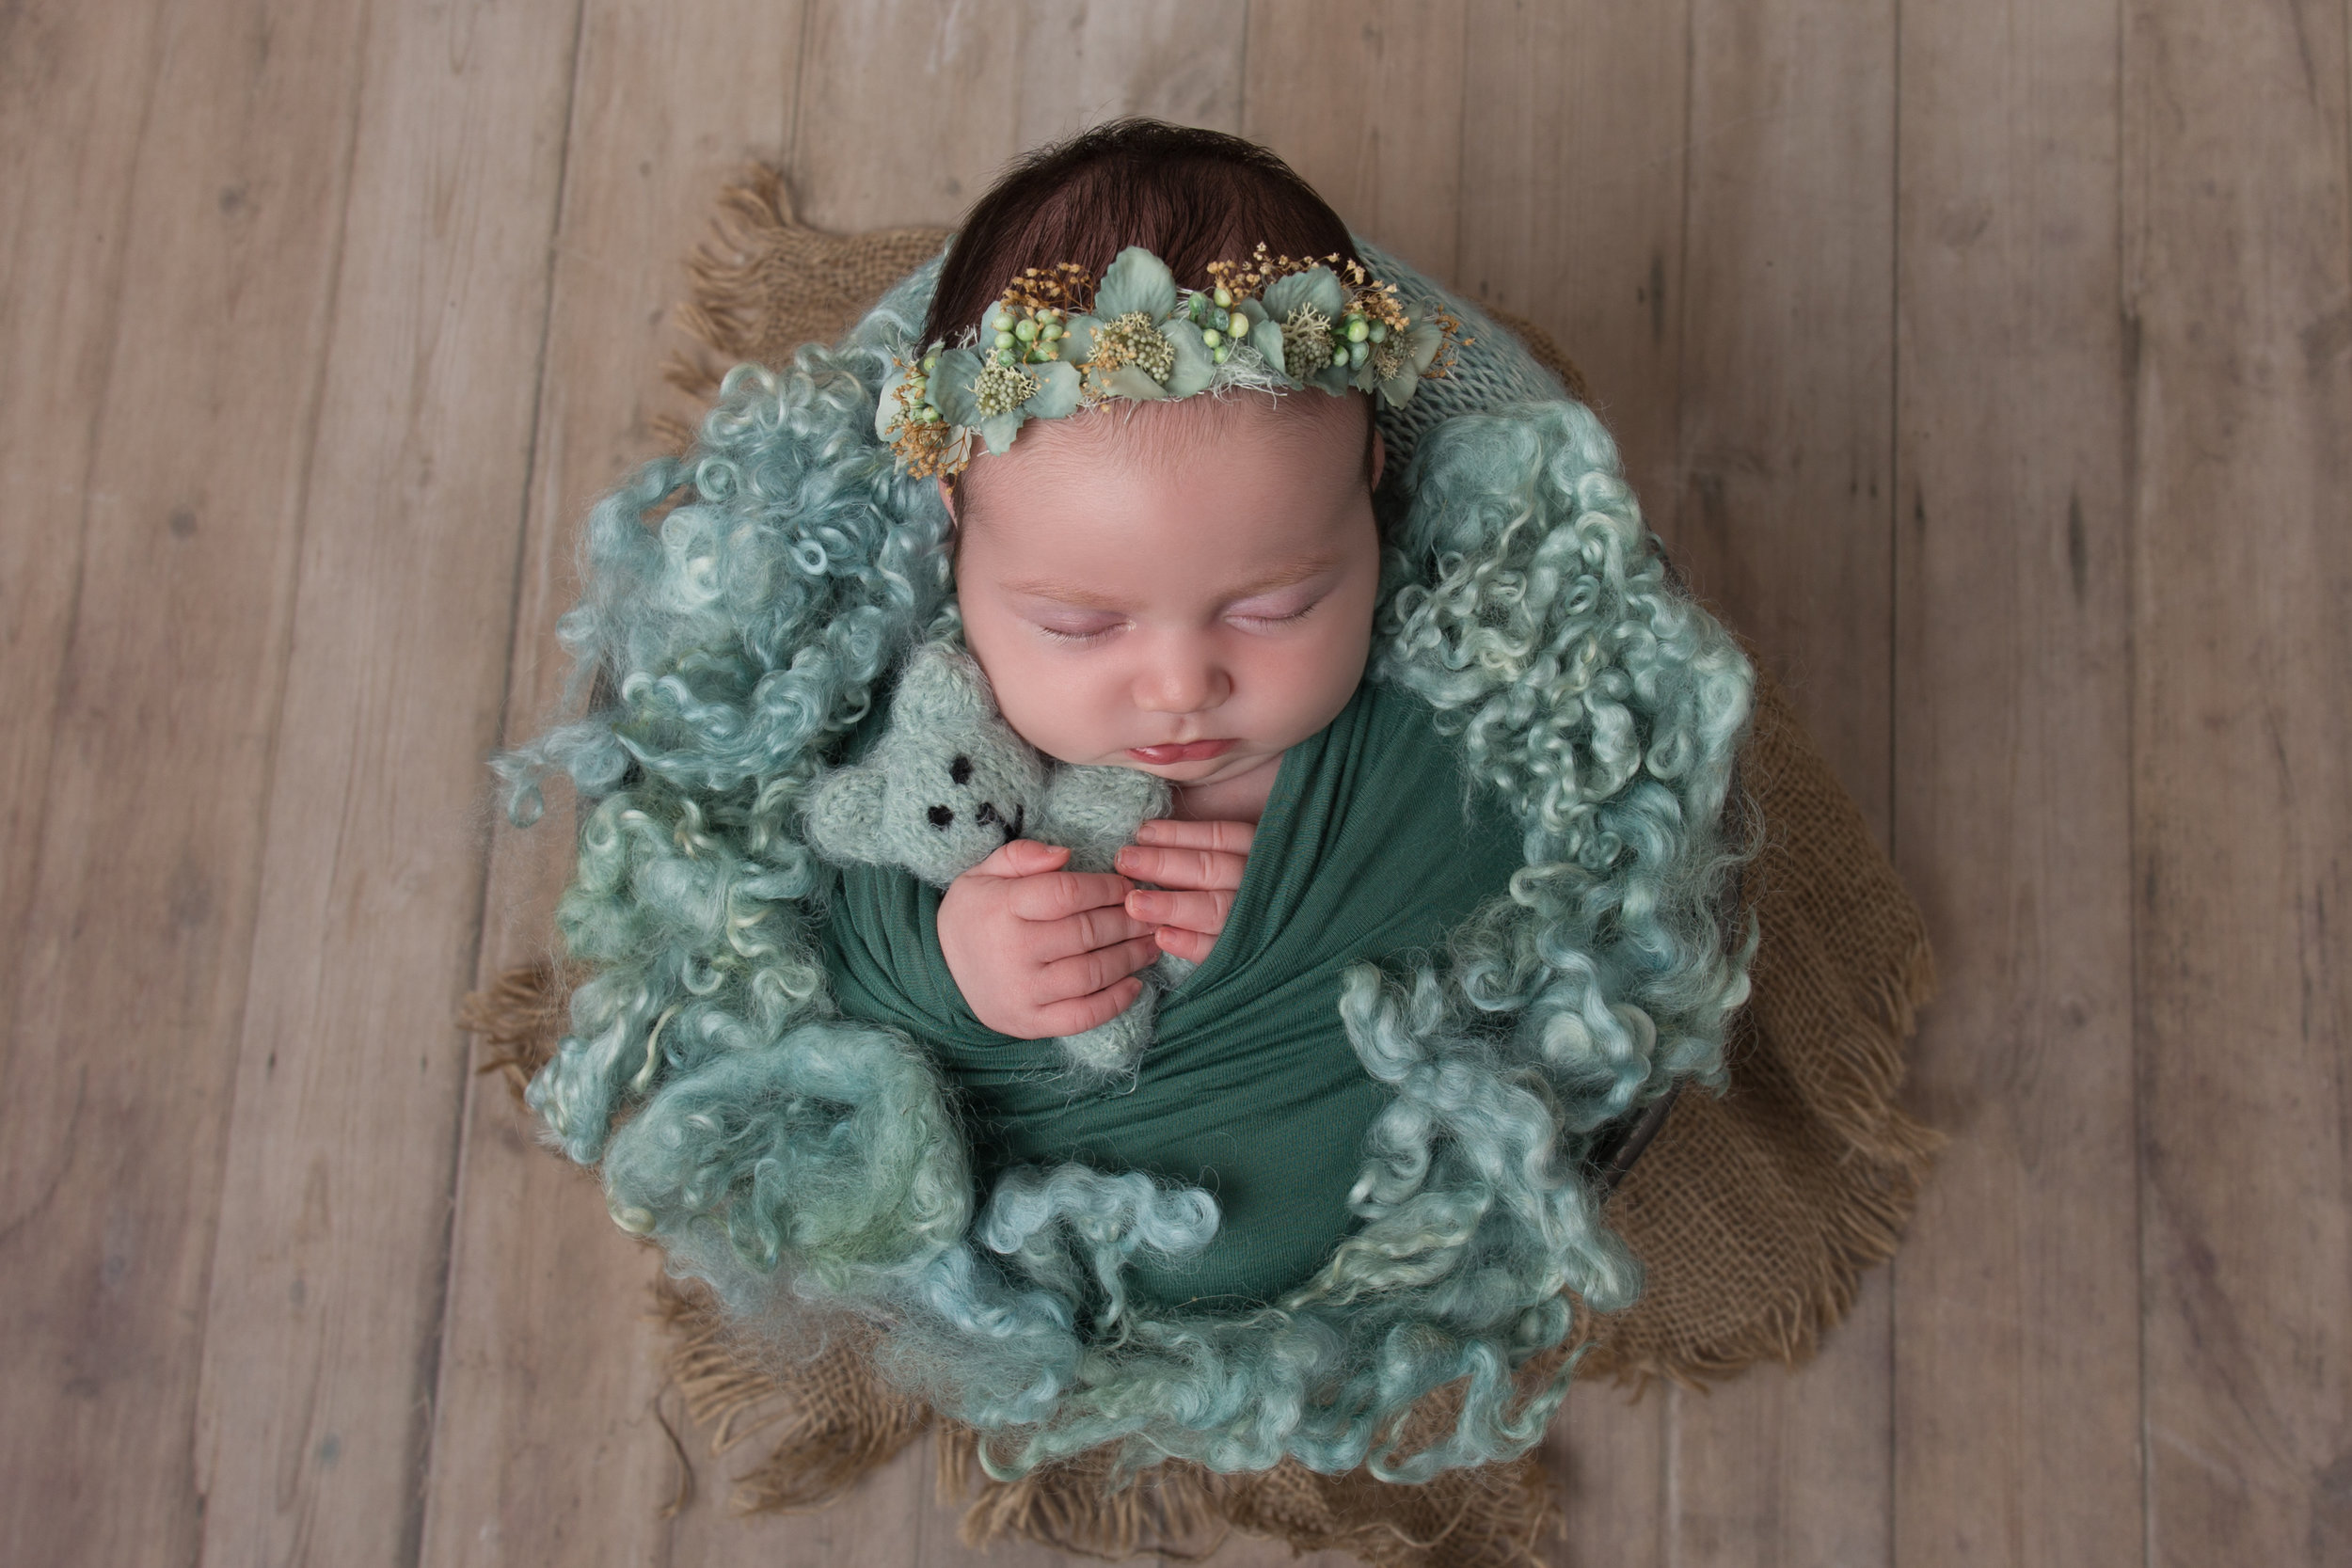 newborn-photography-children-baby-milton keynes-cake-smash-4.jpg